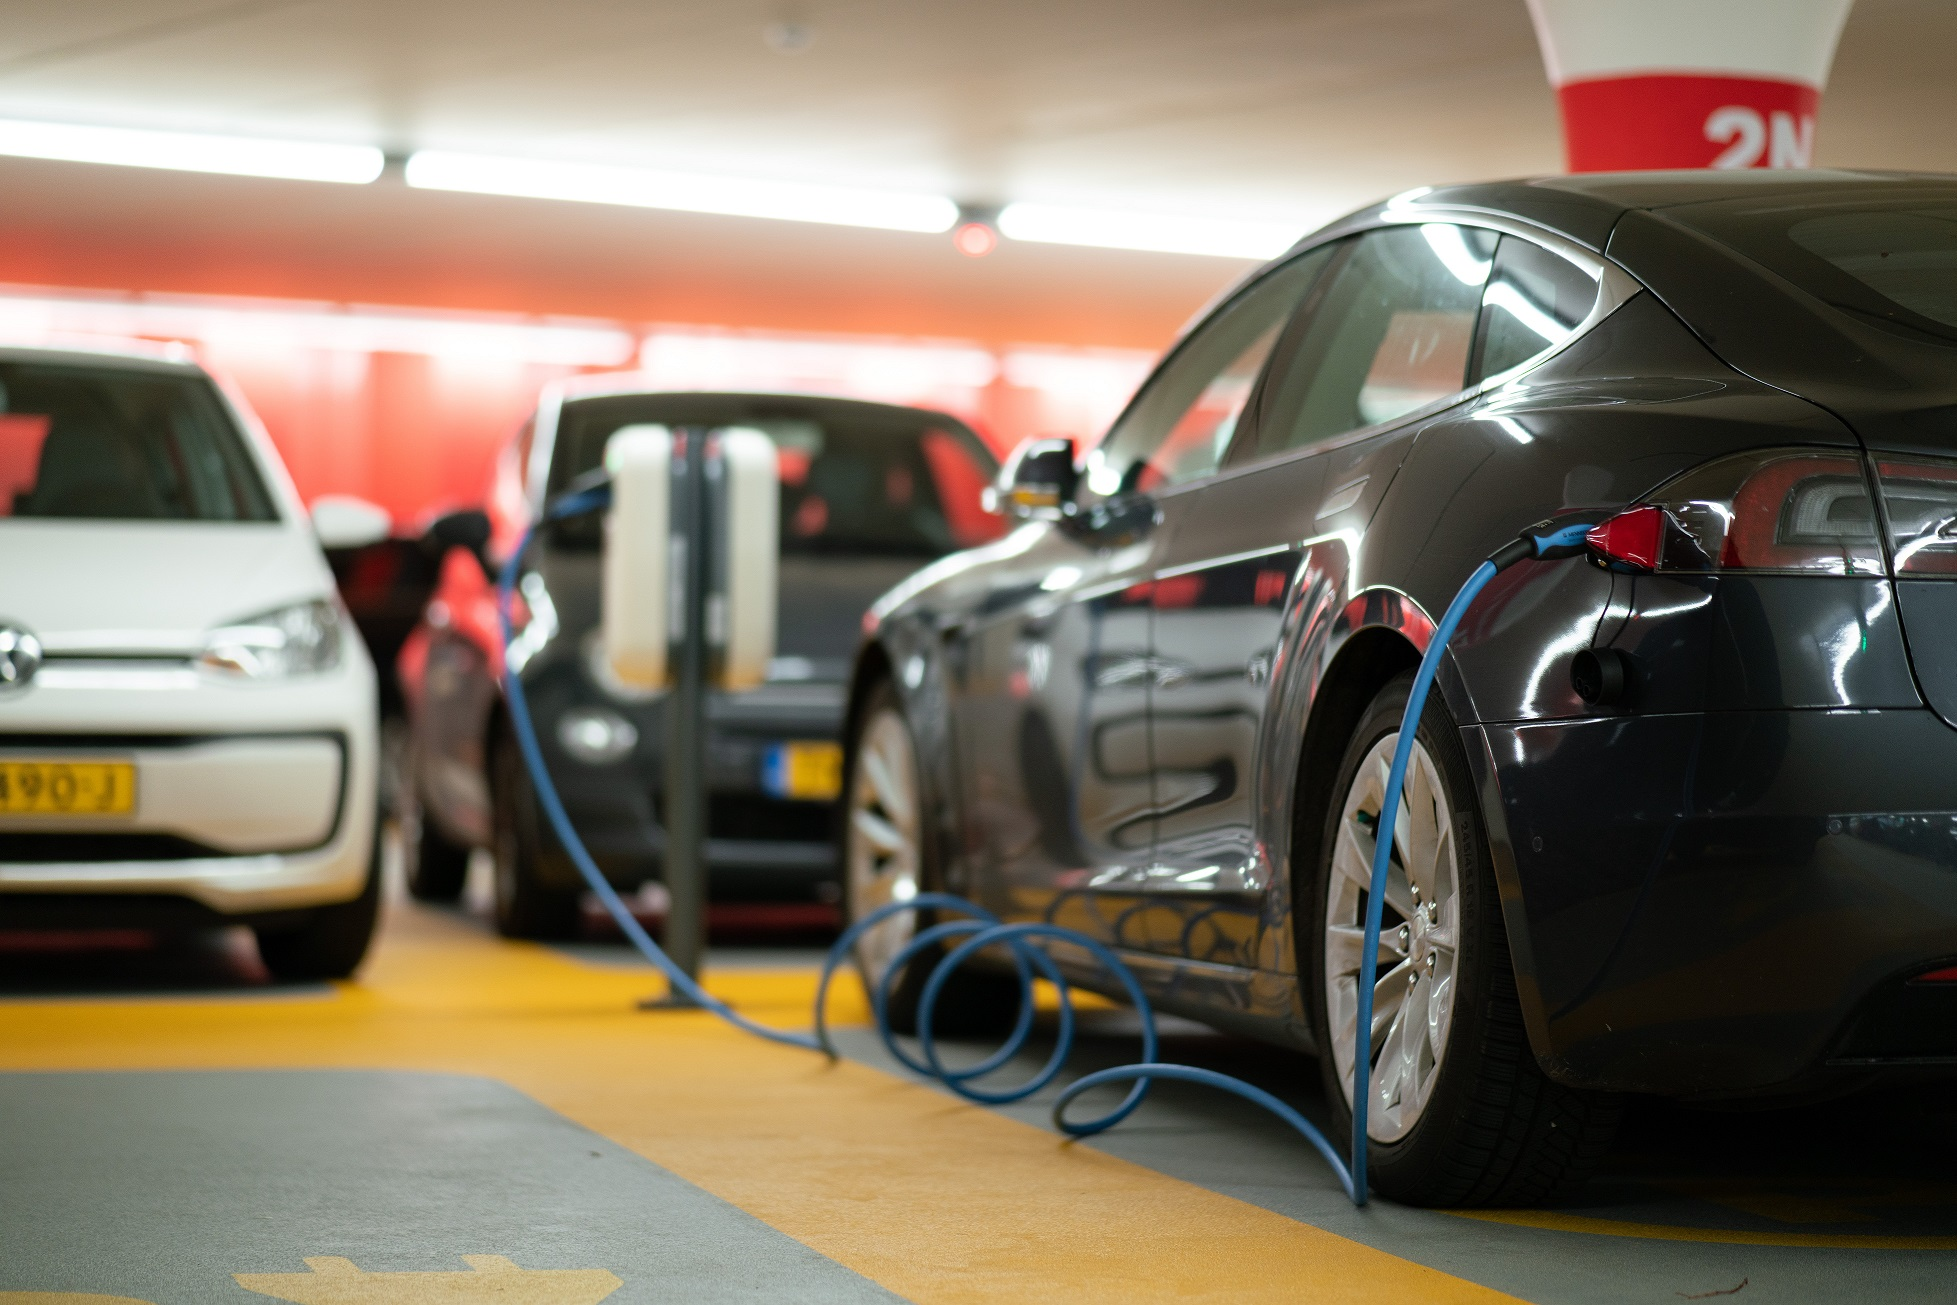 Electric vehicle manufacturers